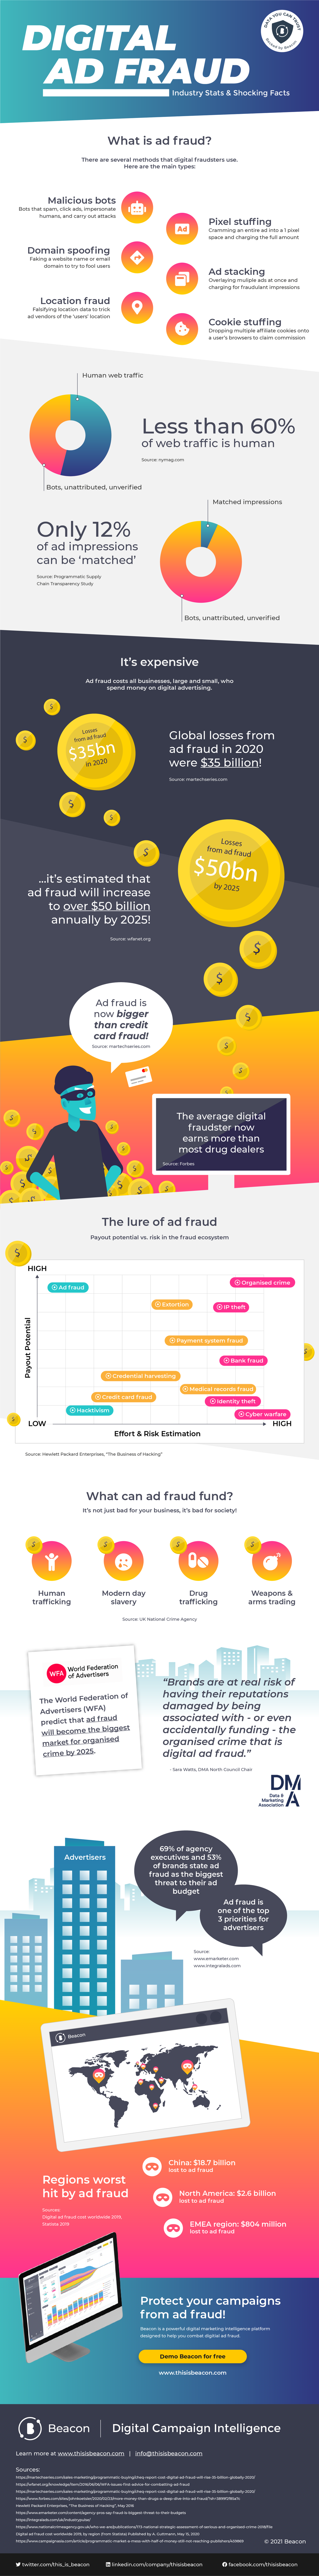 Beacon Ad fraud infographic